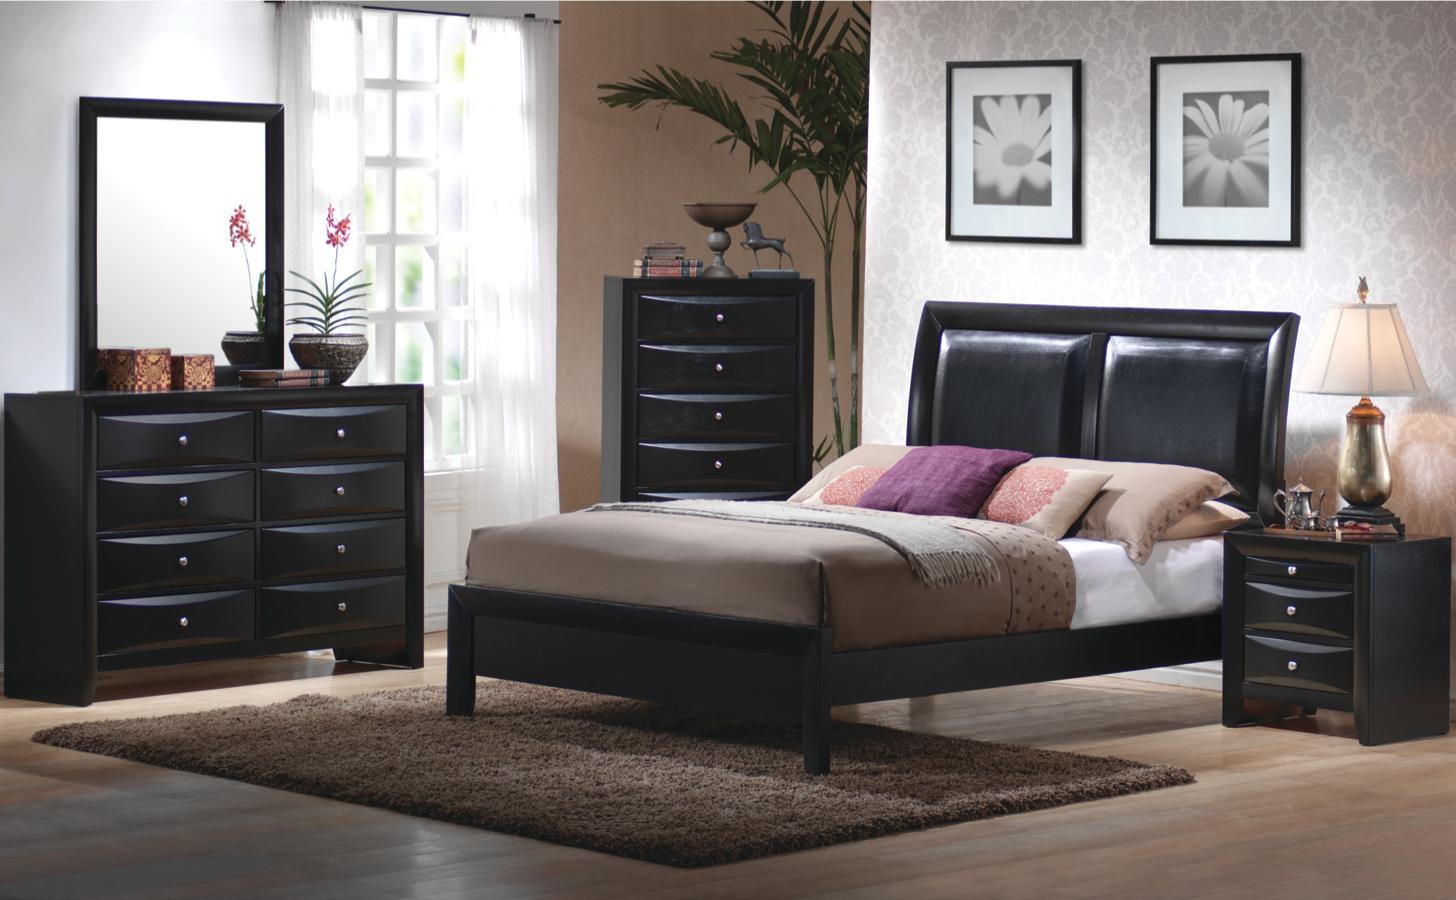 Briana California King Bedroom Group by Coaster at Northeast Factory Direct